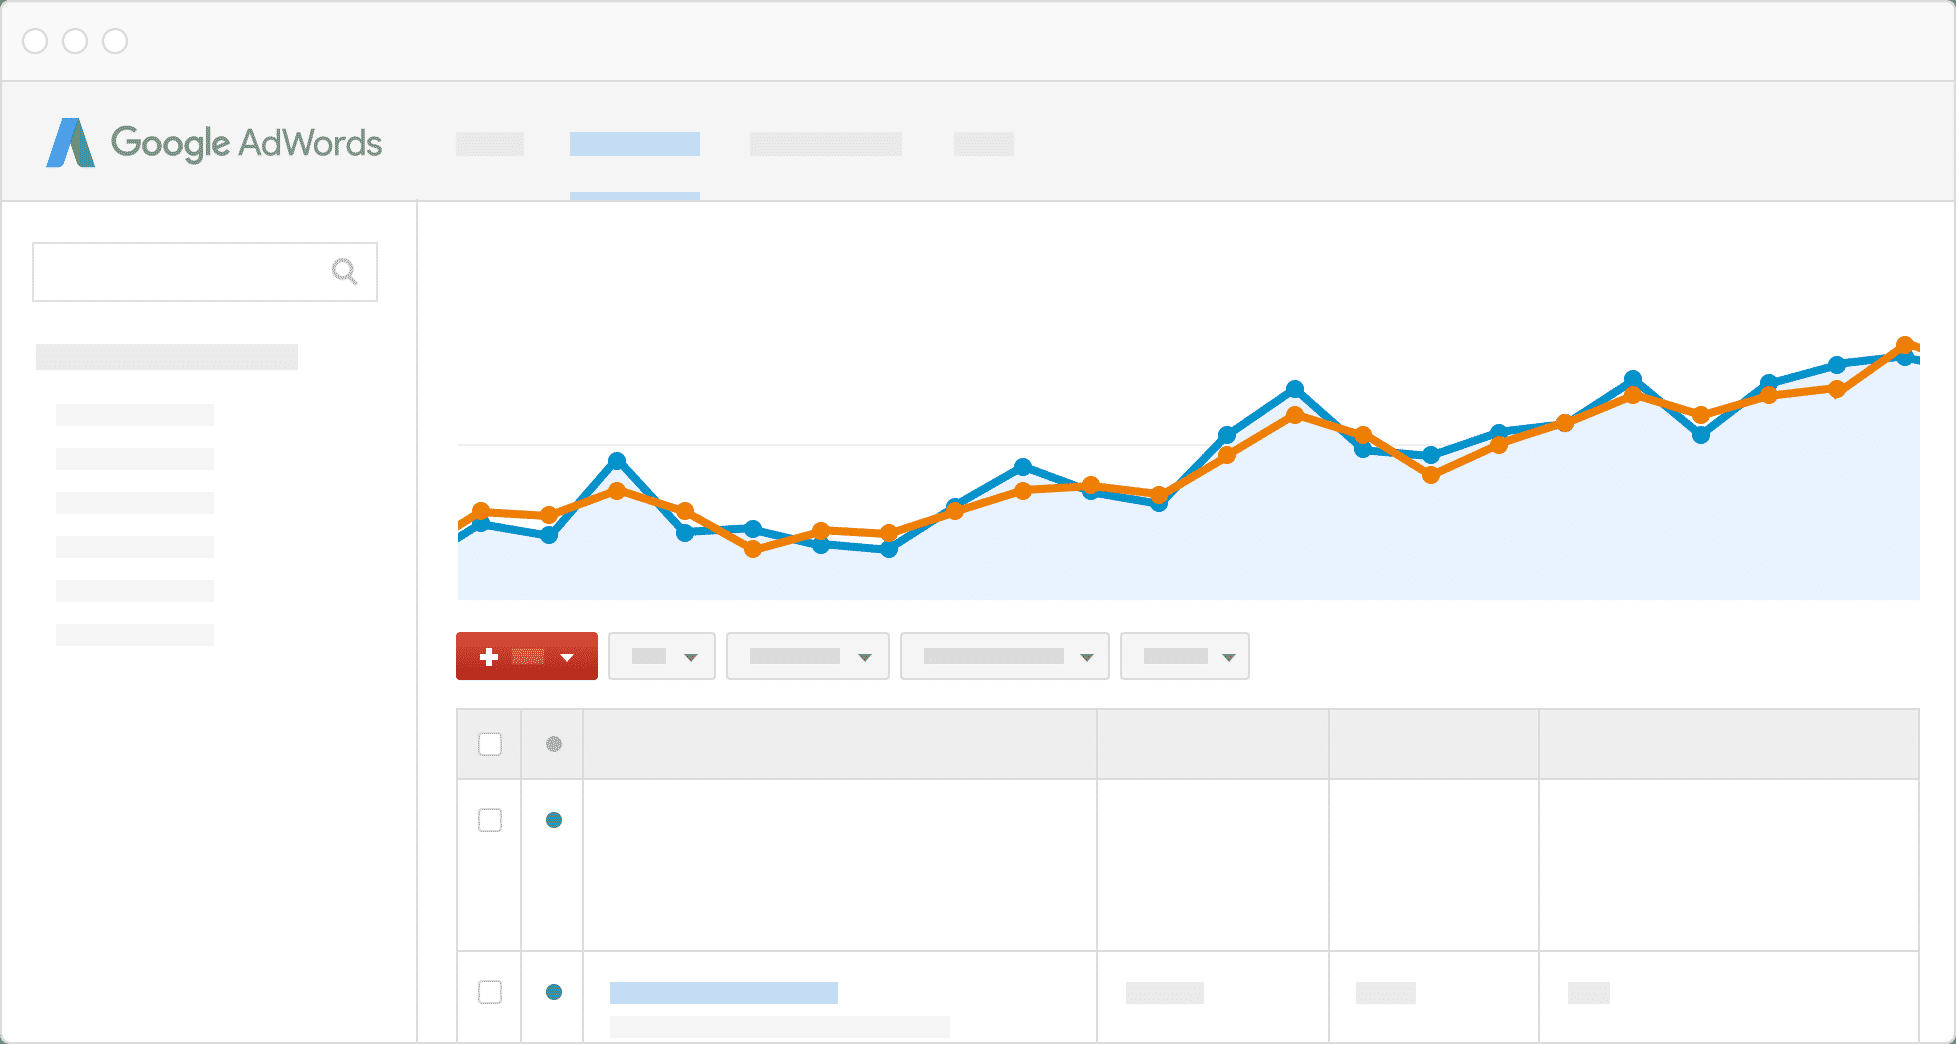 Google AdWords Reporting Chart